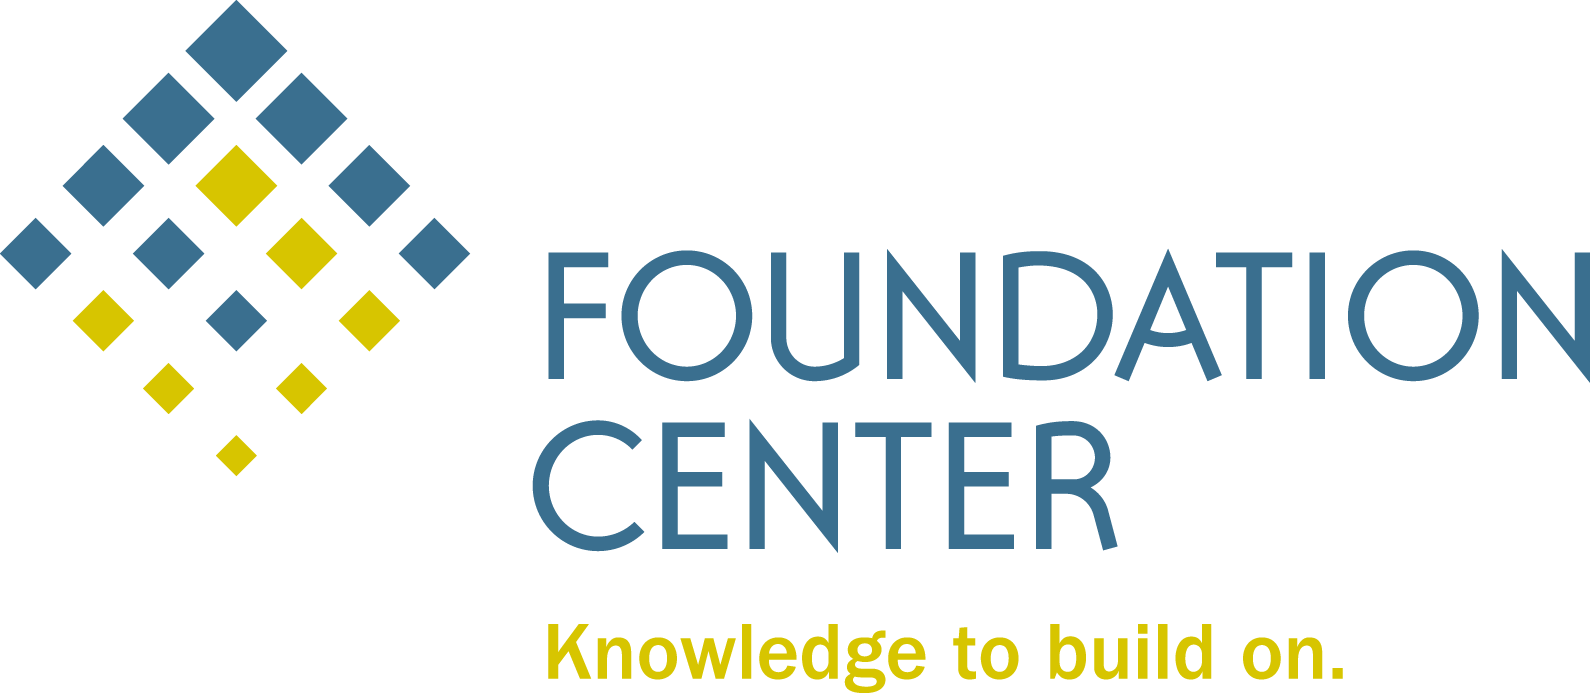 Foundation Center - Knowledge to build on.